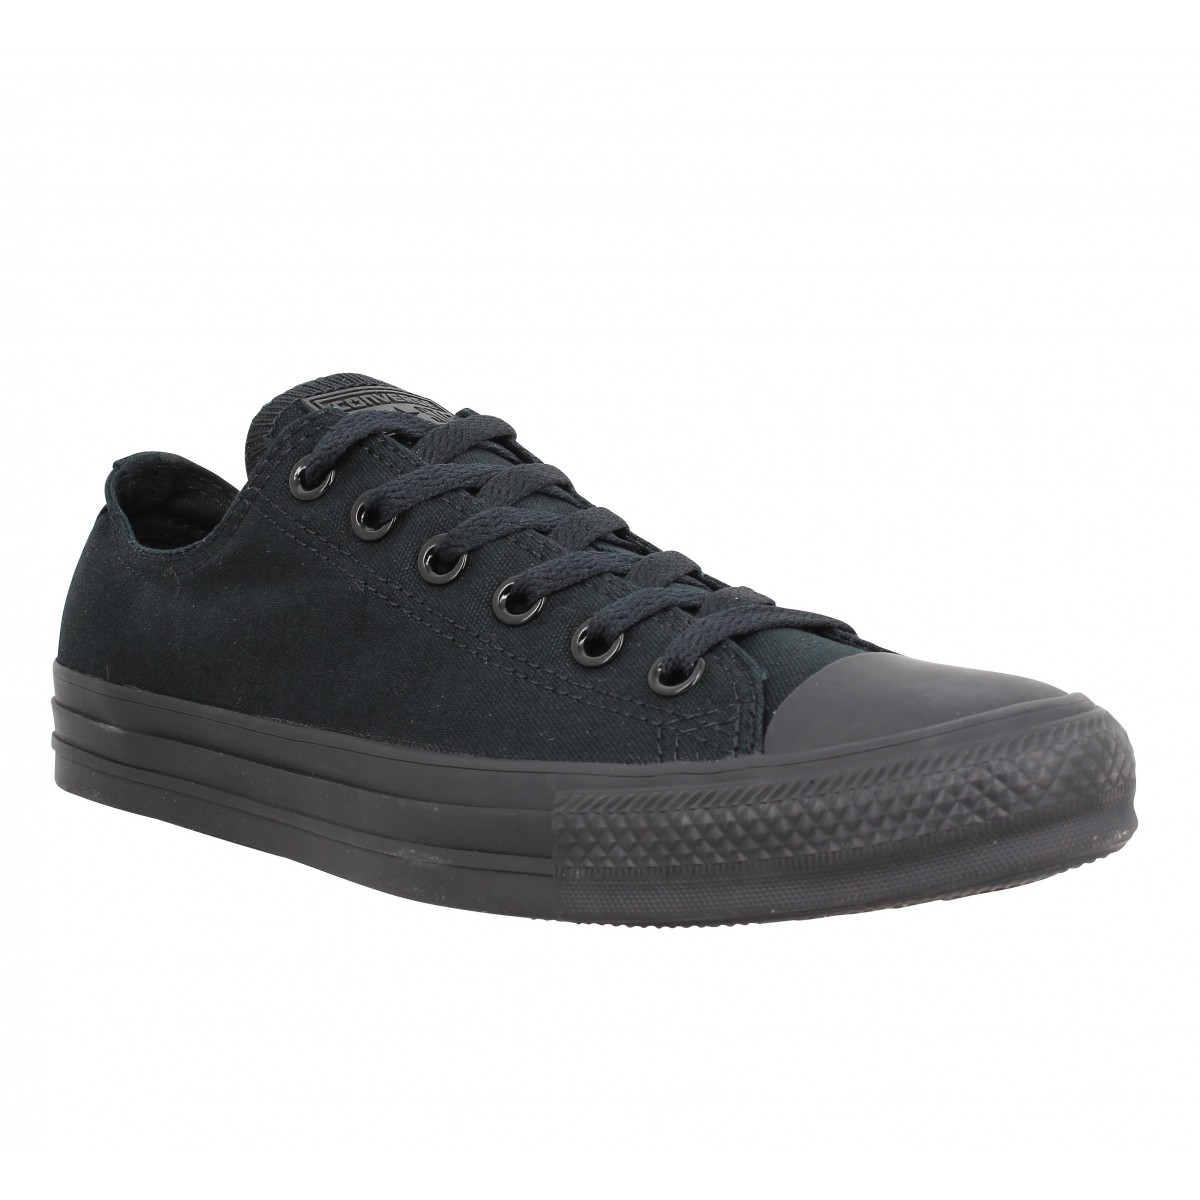 Baskets CONVERSE Chuck Taylor All Star 44080 toile Homme Black